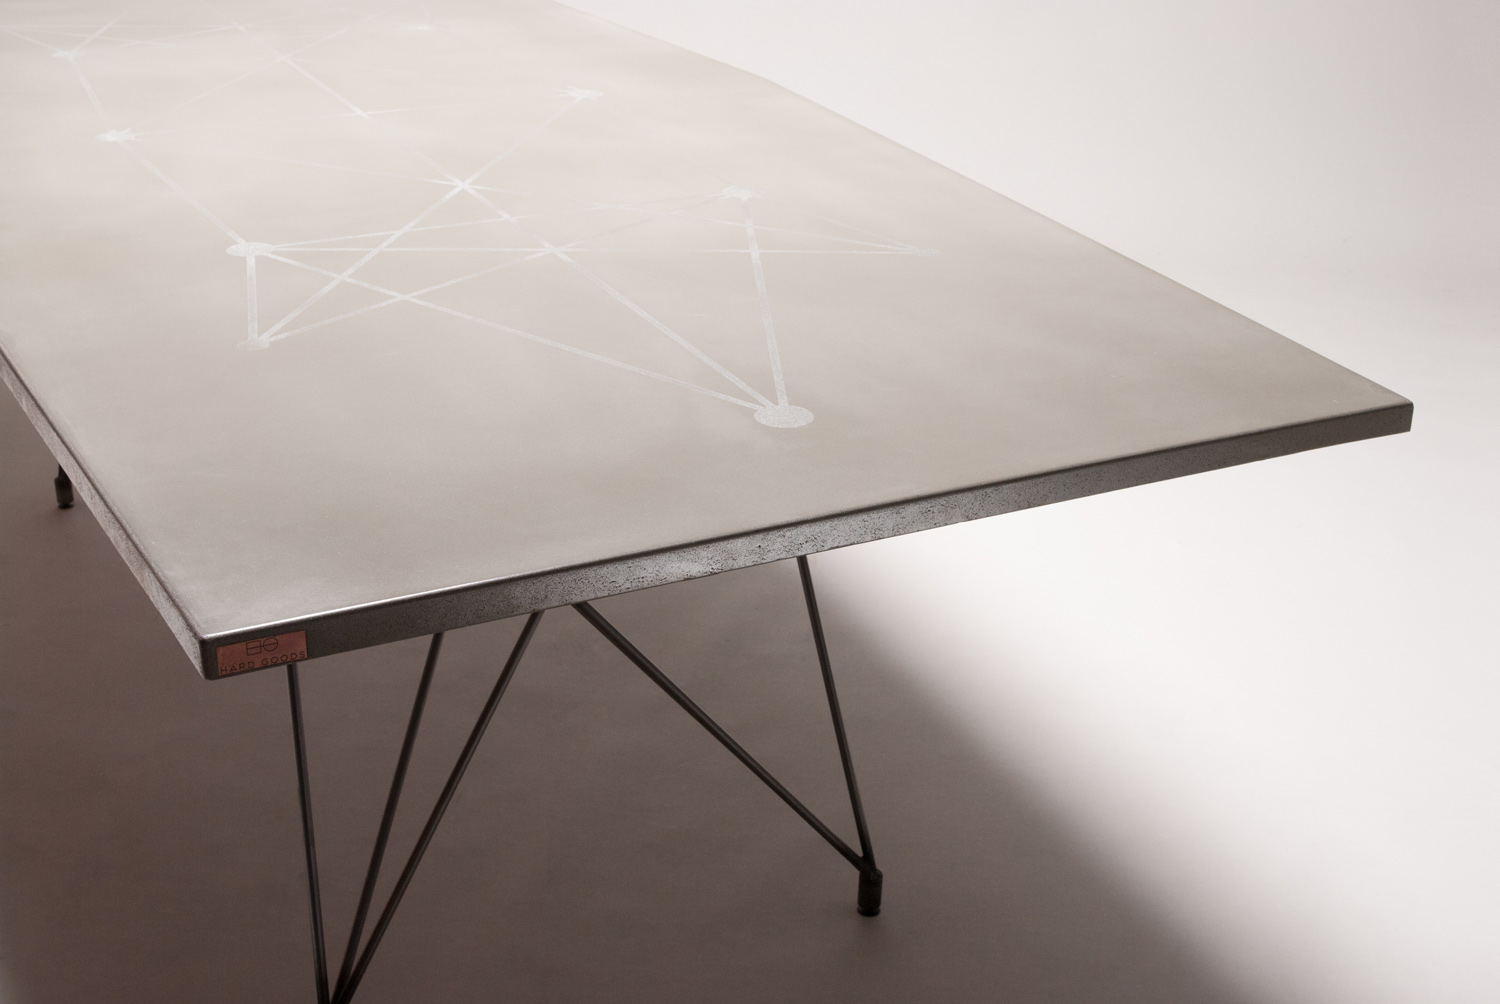 sandblasted pattern in a custom concrete and steel GFRC table